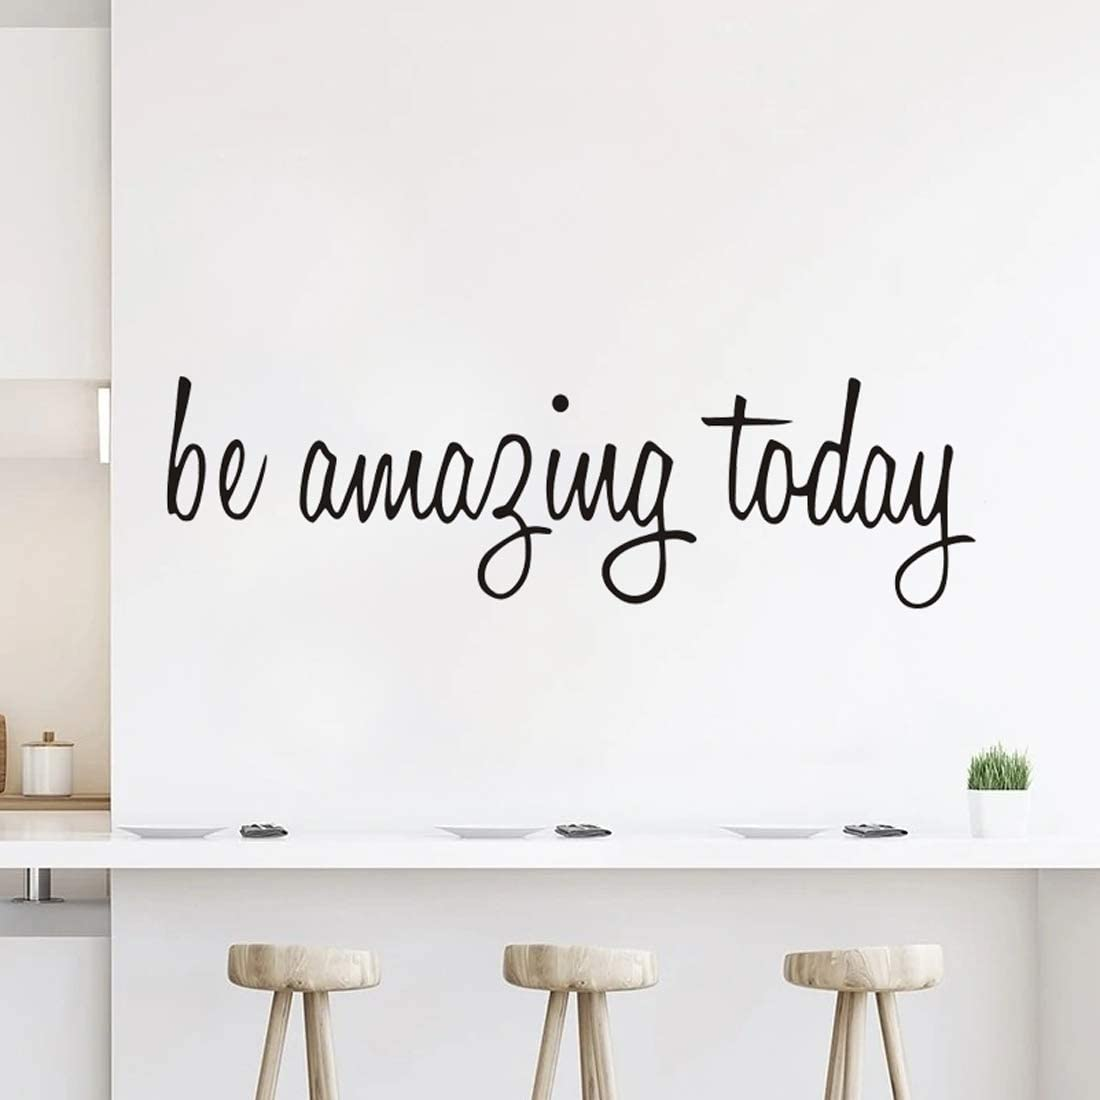 Wall Decals Stickers for Bedroom Be Amazing Today Vinyl Inspirational Wall Saying Peel and Stick Motivational Quotes Decal for Home Living Room Decor DIY Decoration